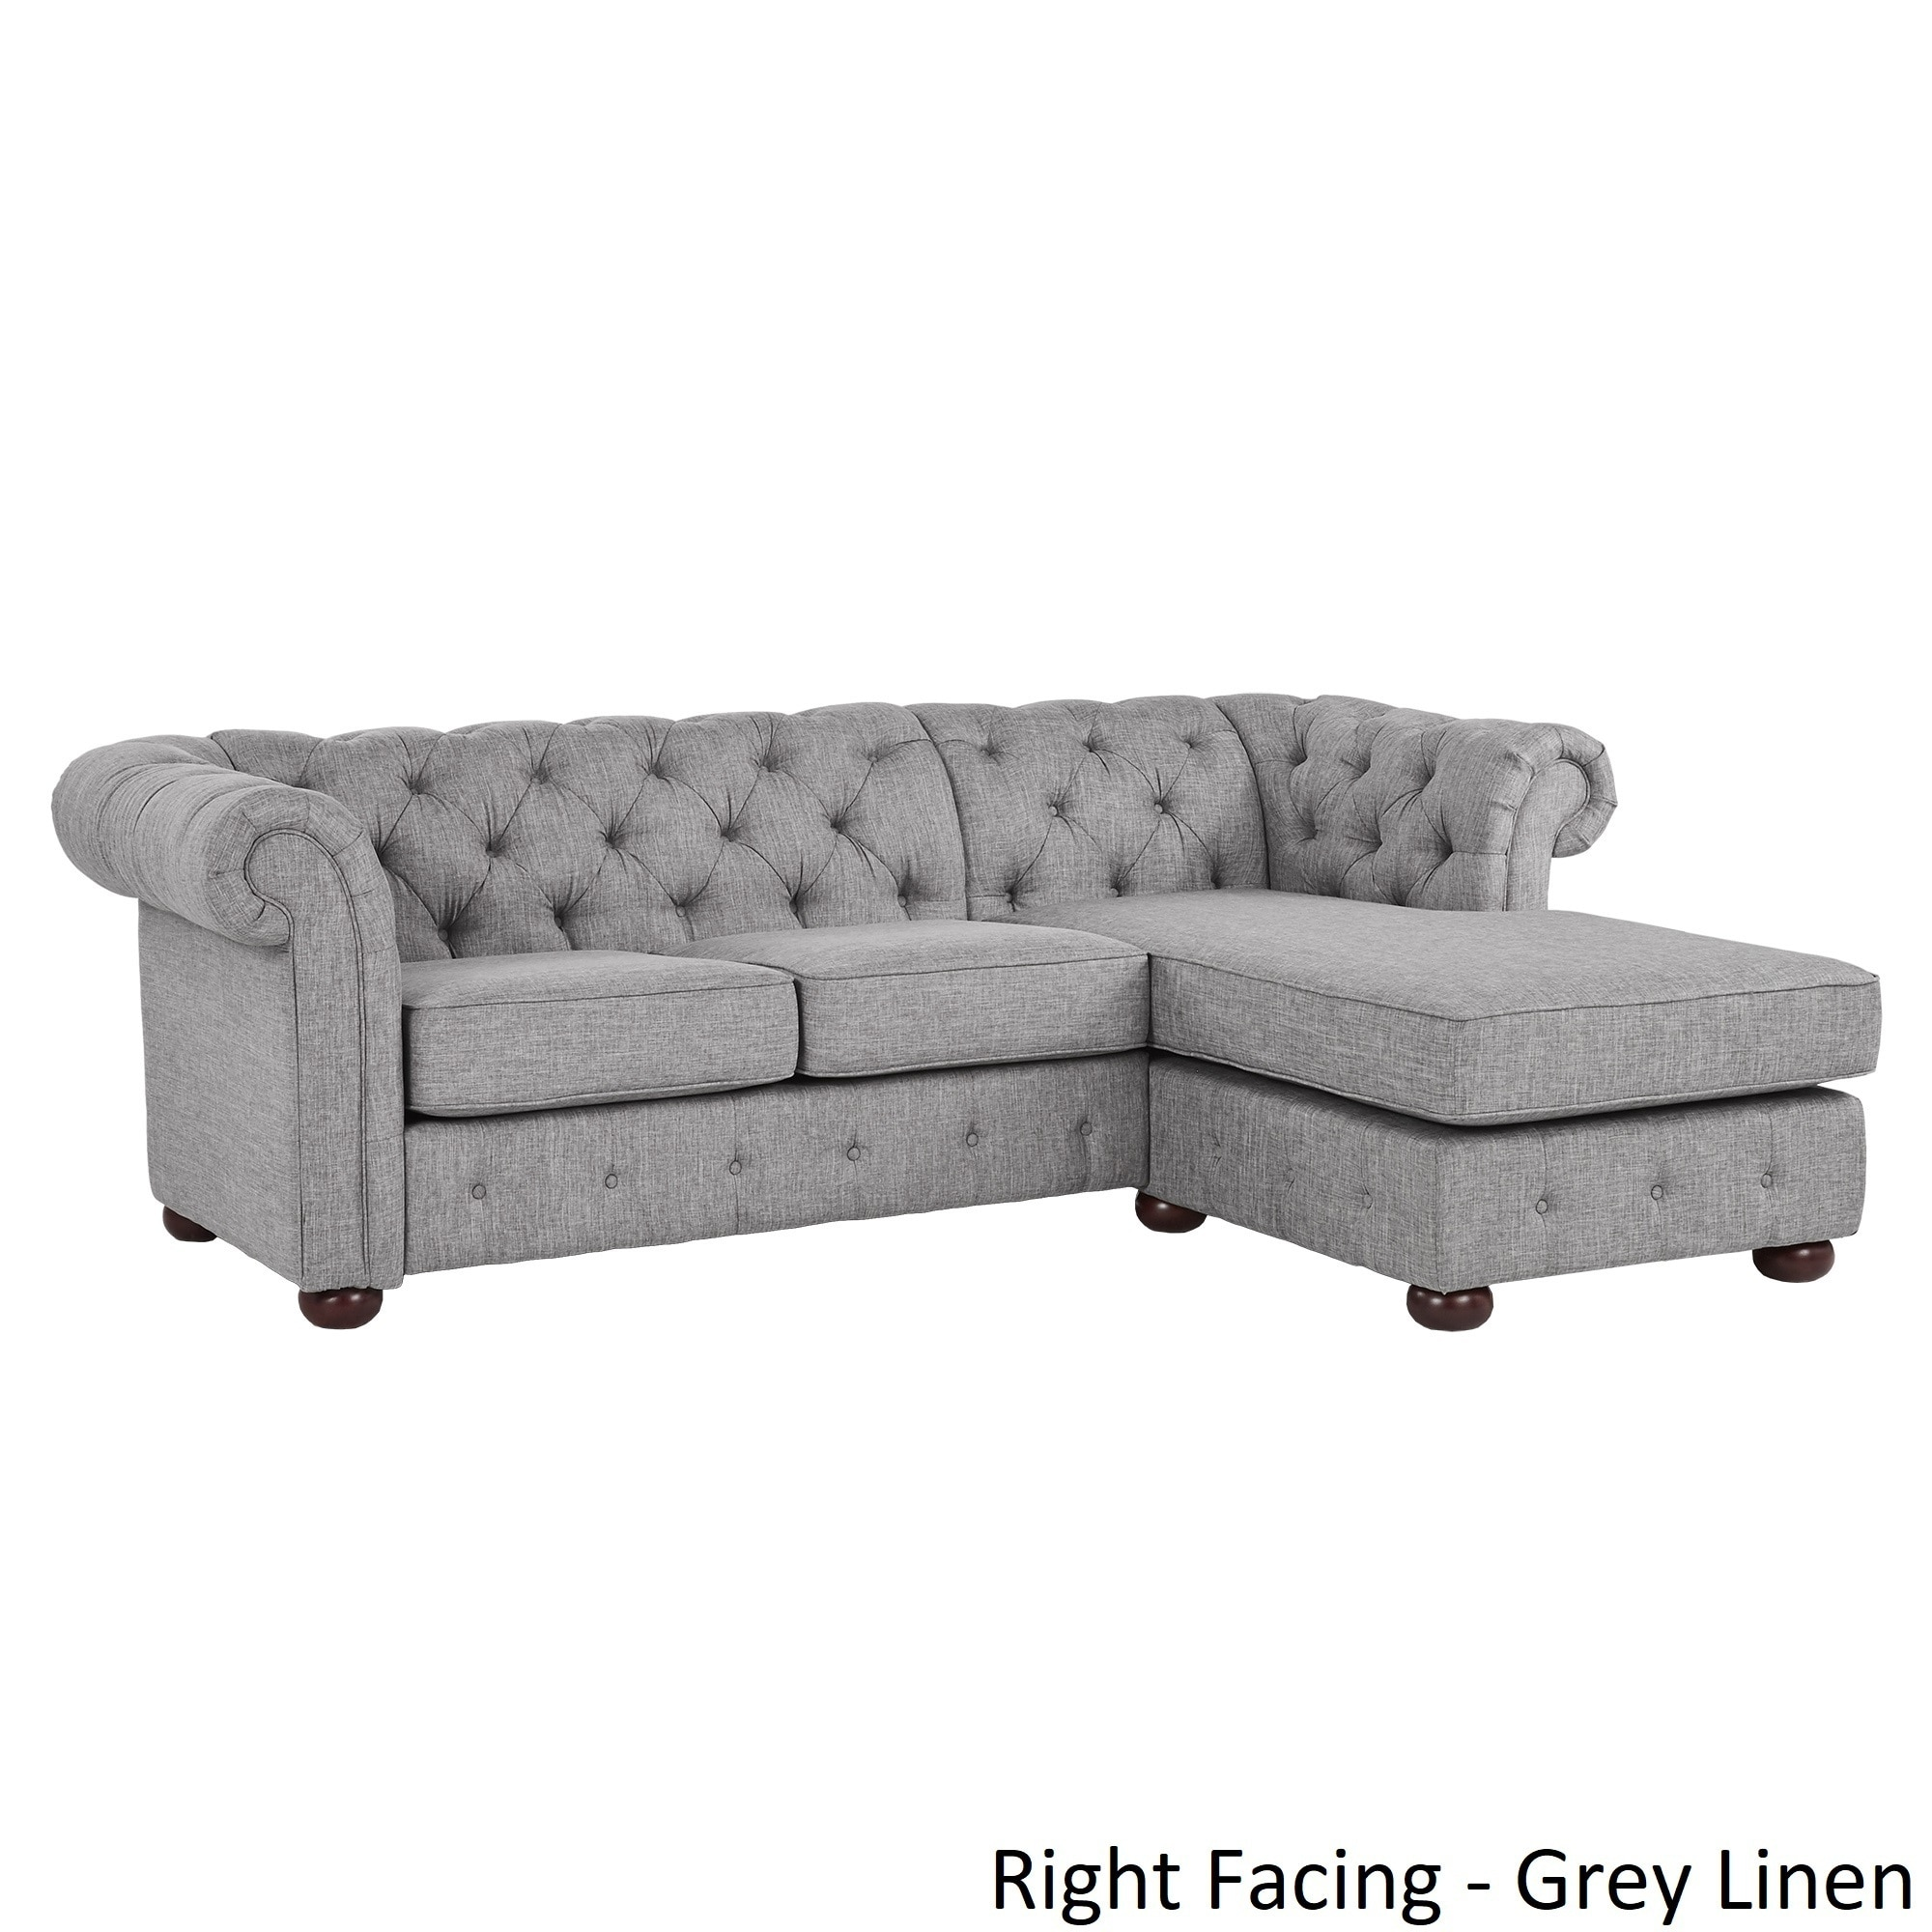 Genial Shop Knightsbridge Tufted Scroll Arm Chesterfield 3 Seat Sofa And Chaise By  INSPIRE Q Artisan   On Sale   Free Shipping Today   Overstock.com   20666781